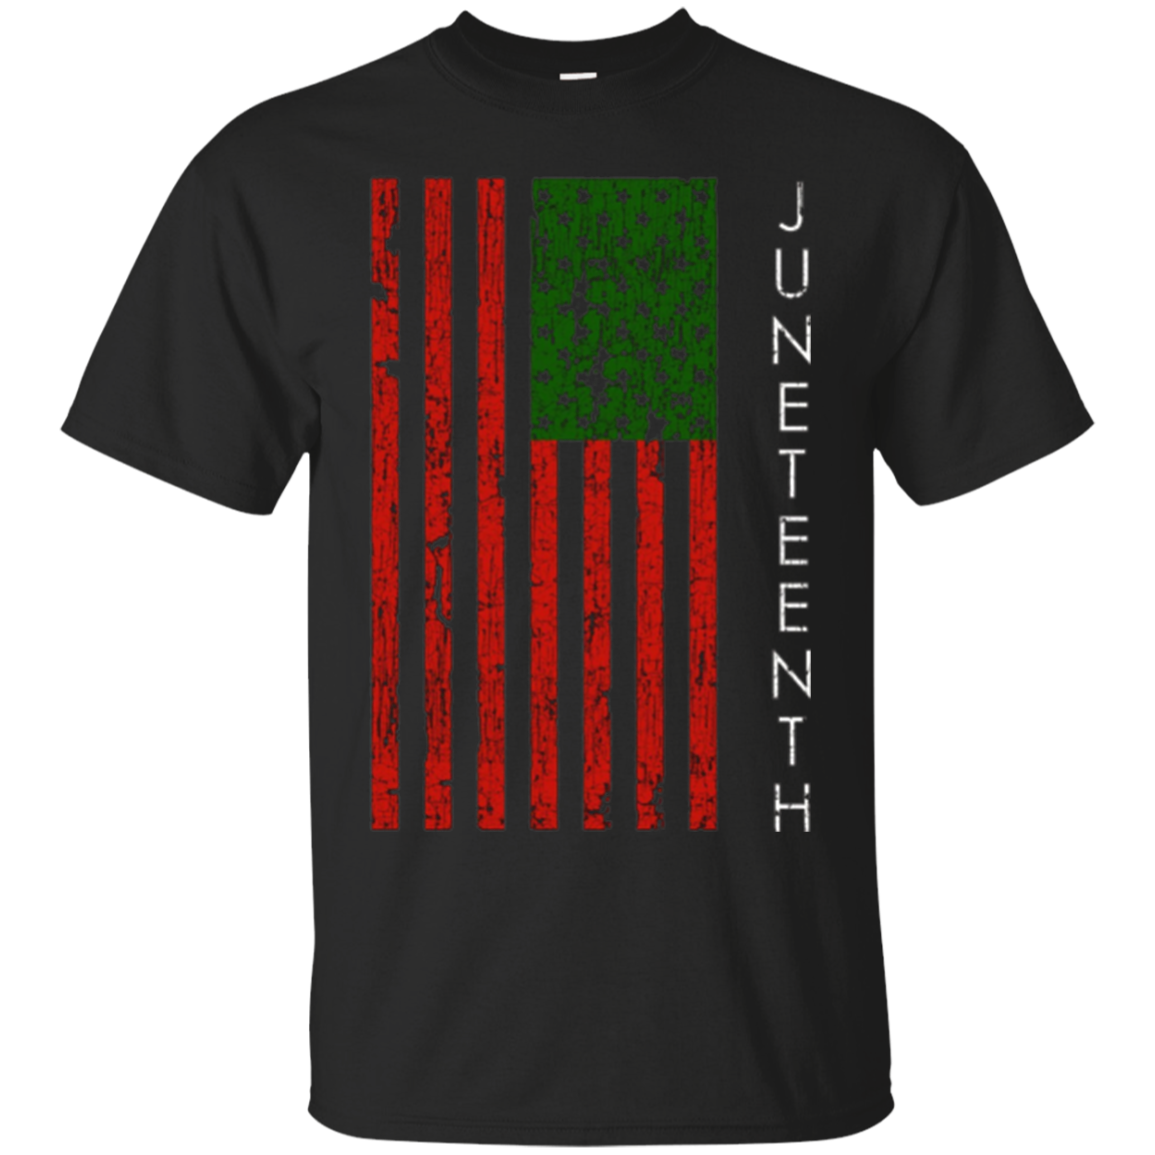 Juneteenth Flag T-Shirt for Kids, Women and Men